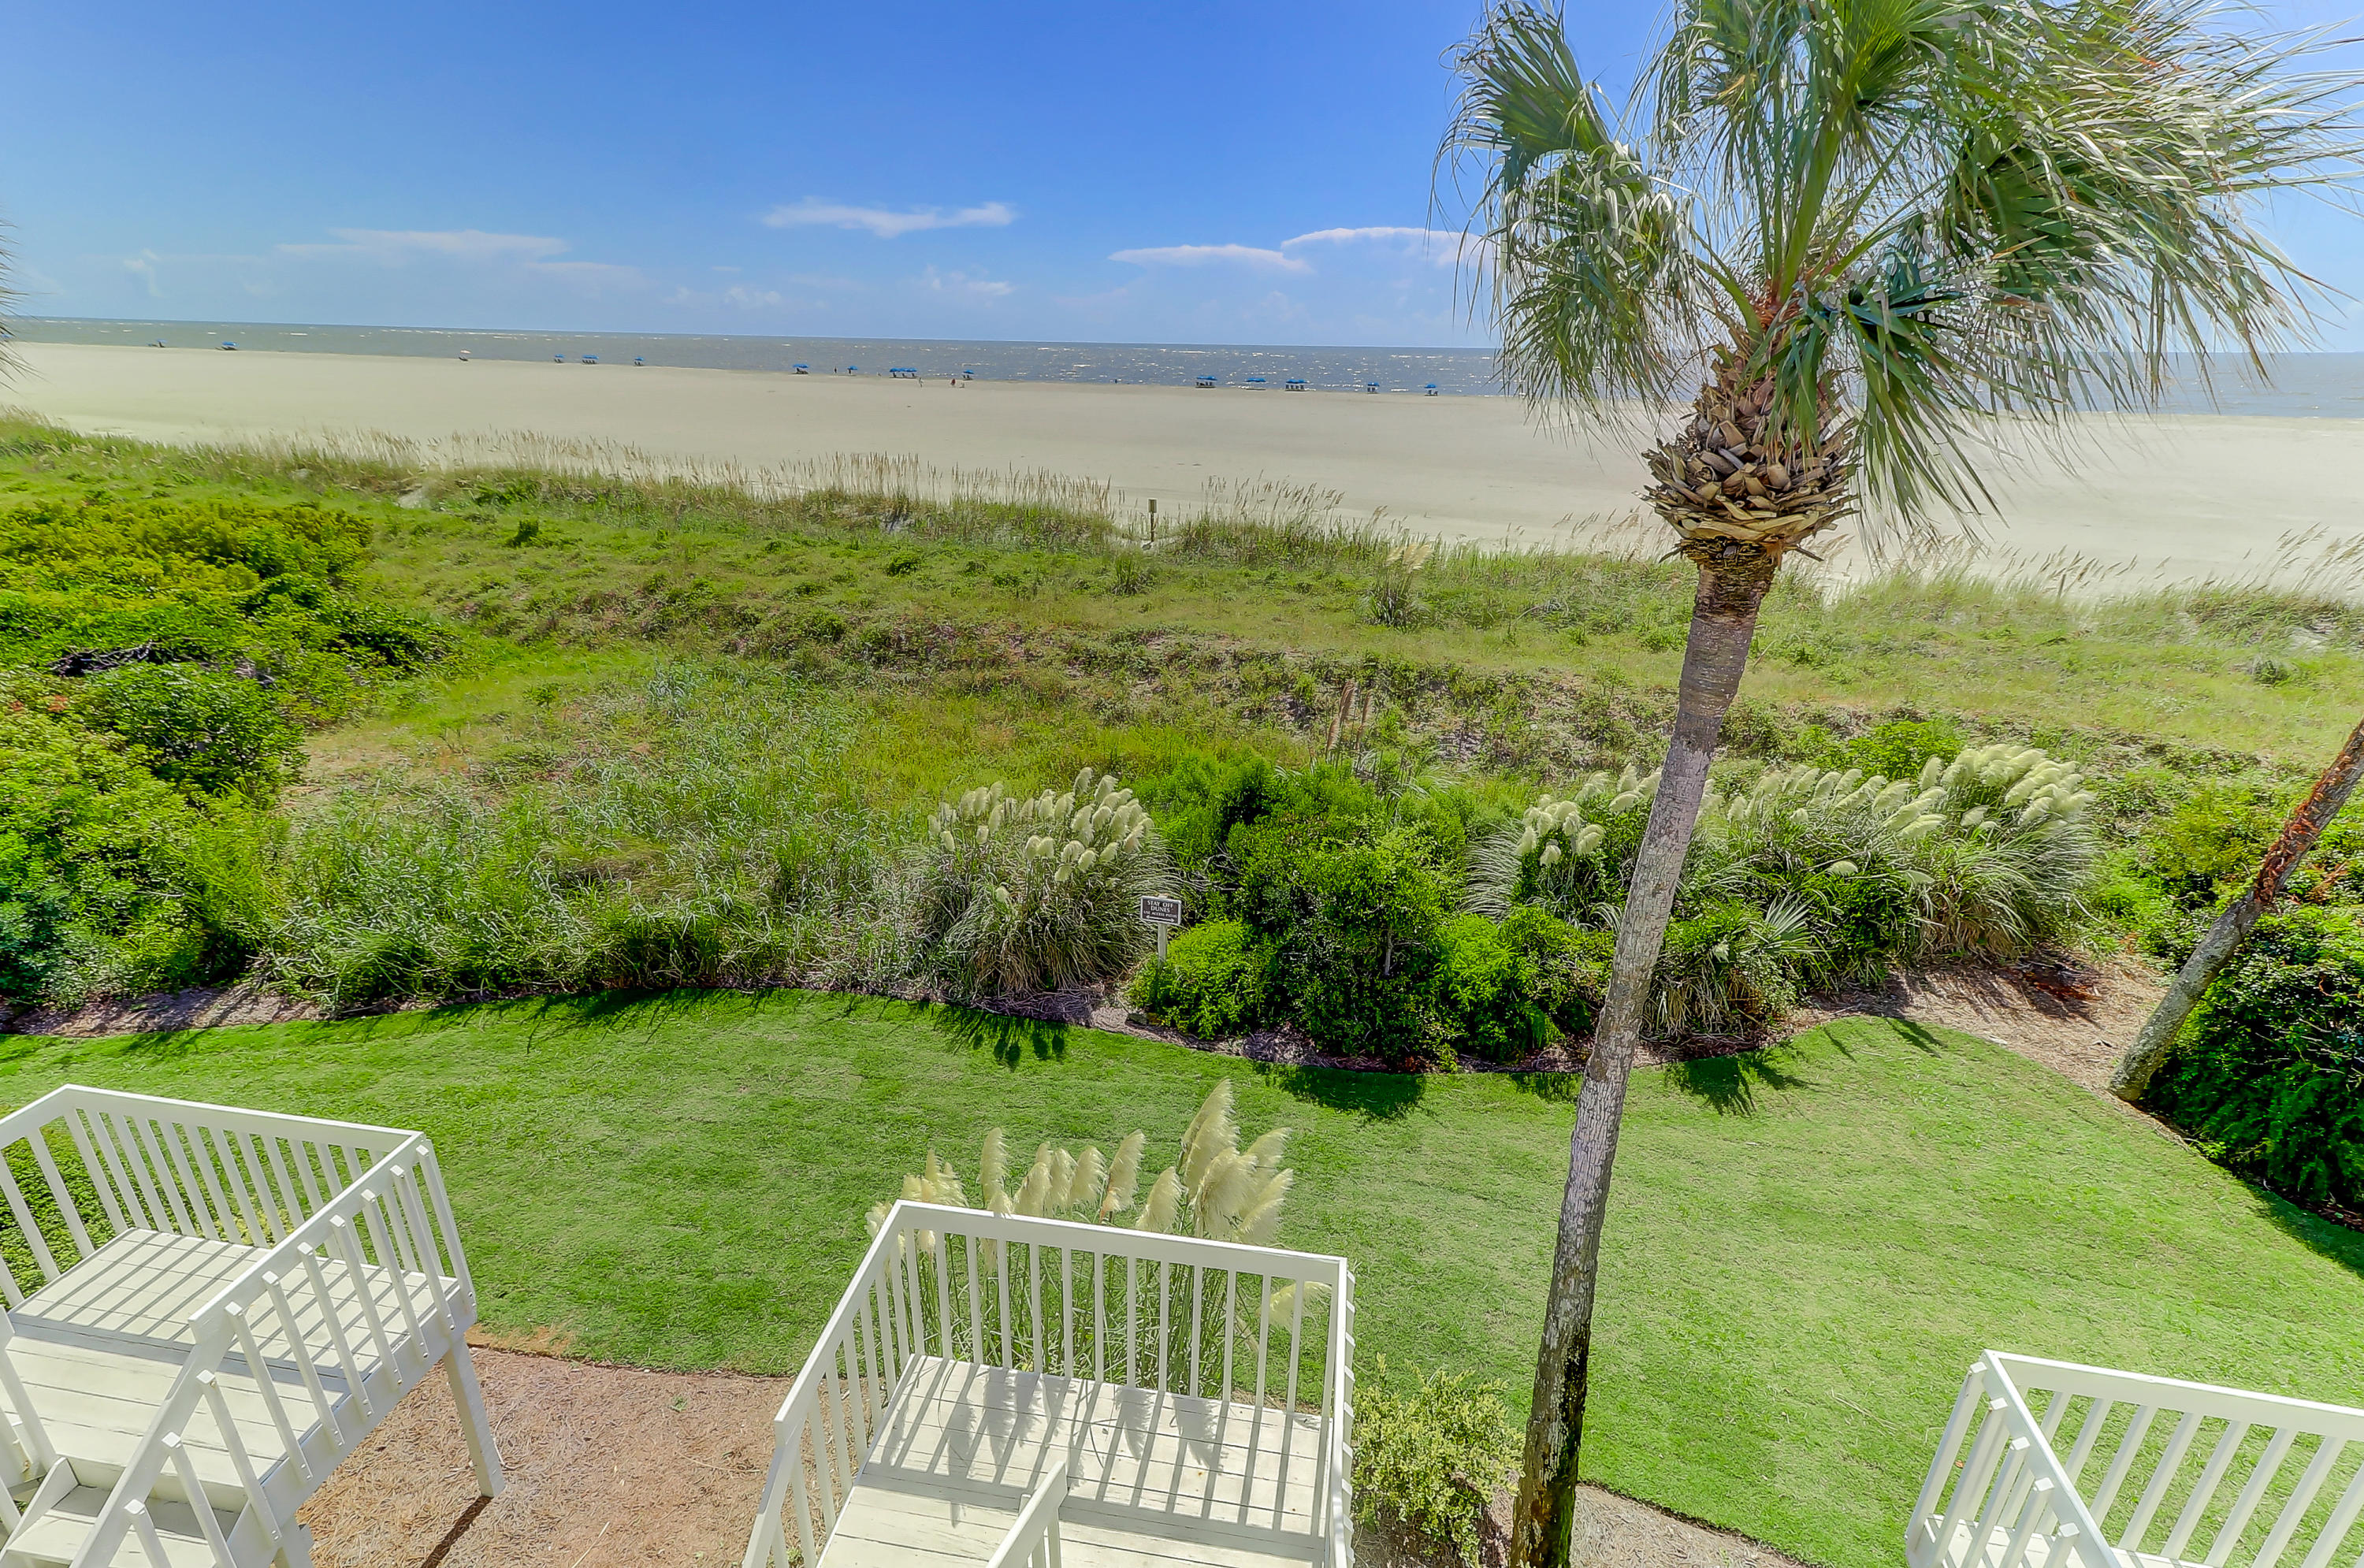 Beach Club Villas Homes For Sale - 33 Beach Club Villas, Isle of Palms, SC - 9